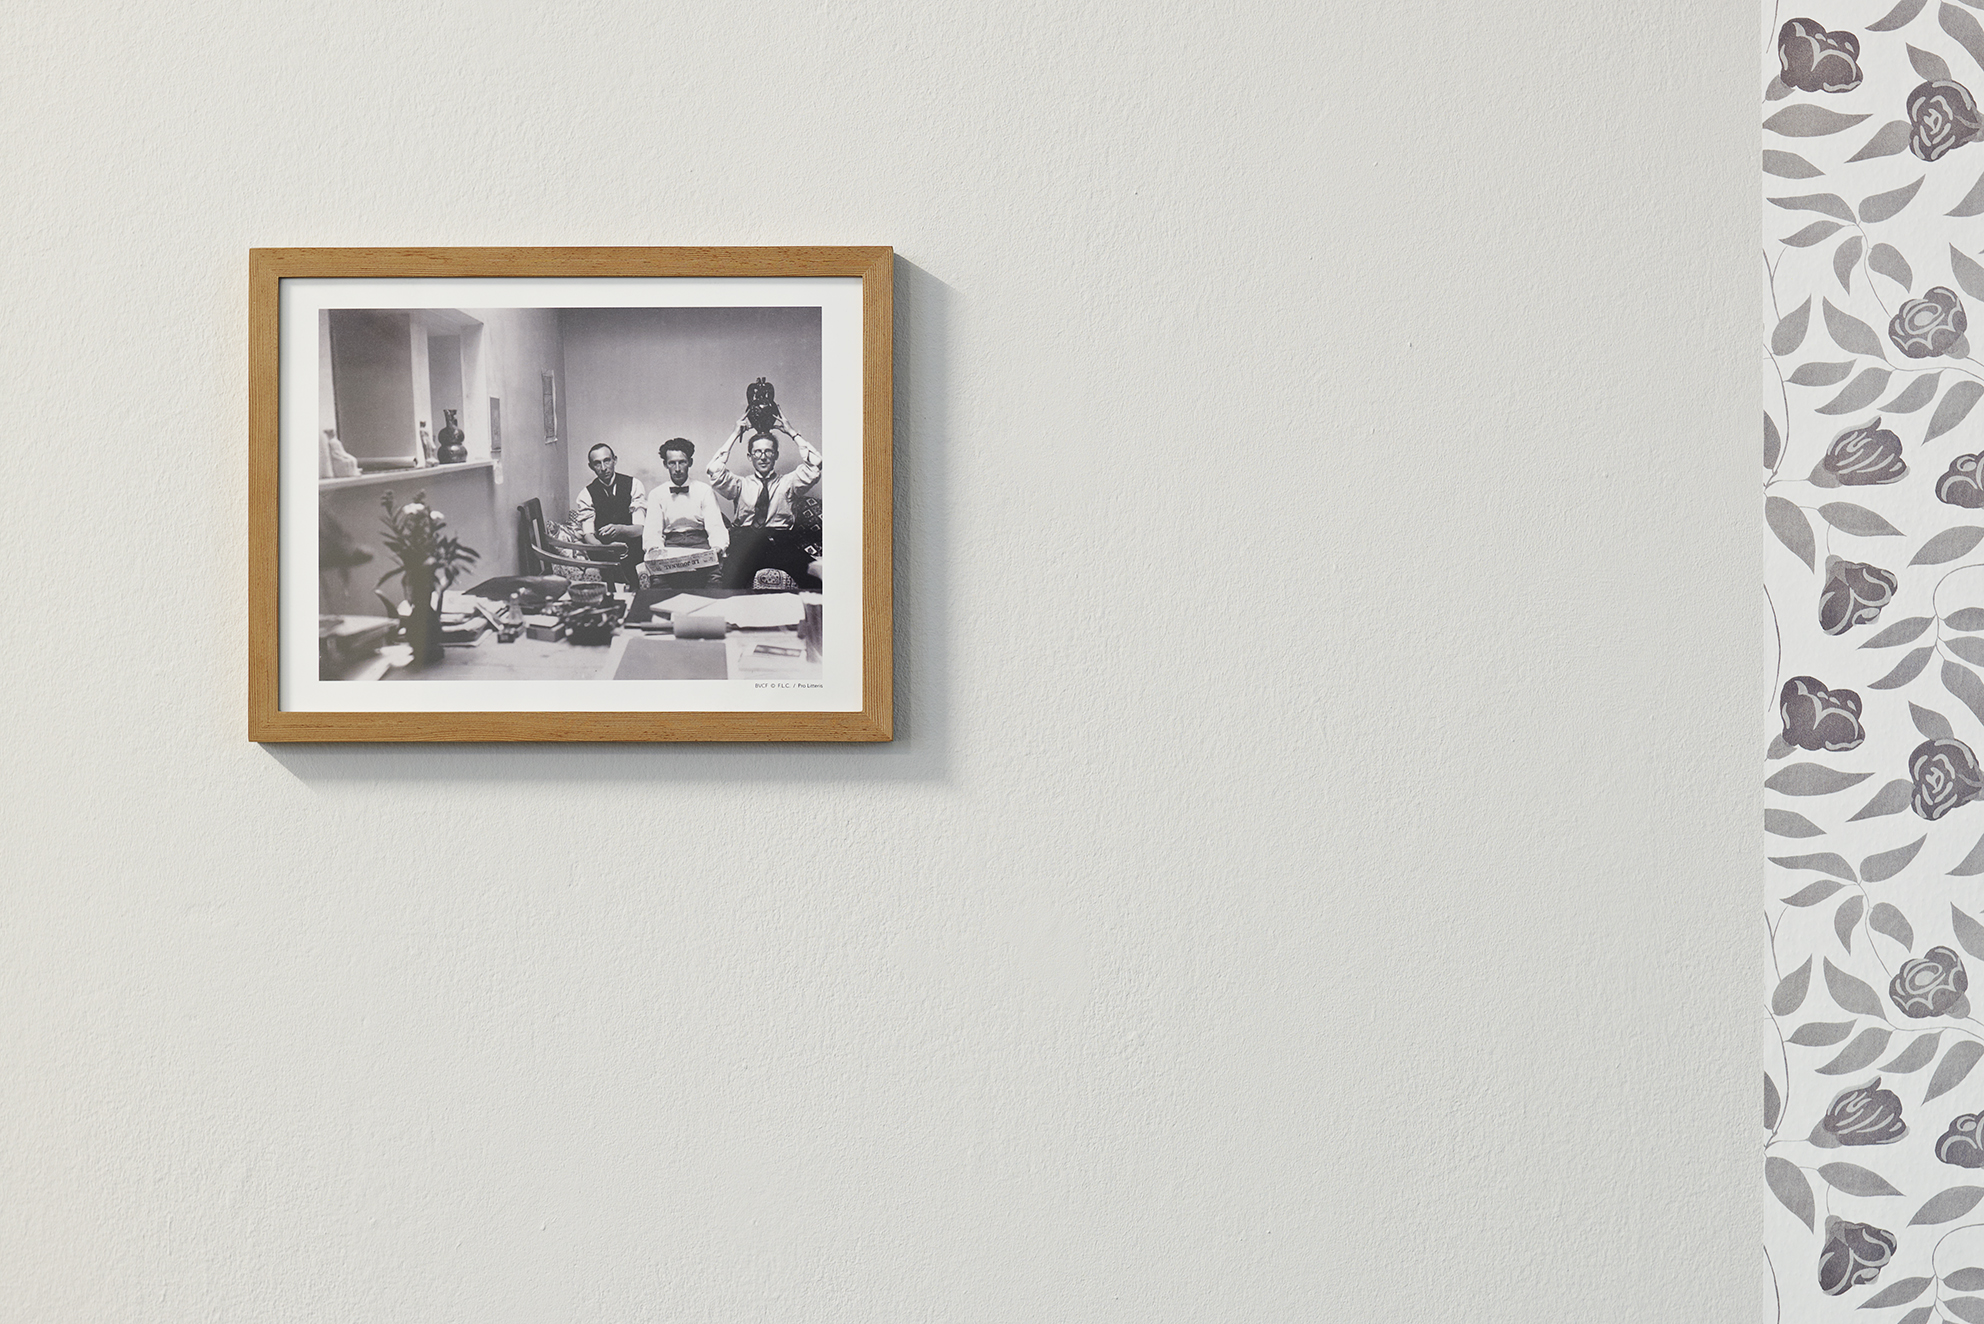 "Hitchcock presents, detail of the video installation, HD, 16/9, 1080p, 6'26"", photograph of Le Corbusier and his brother, 2010, © David Gagnebin-de bons"